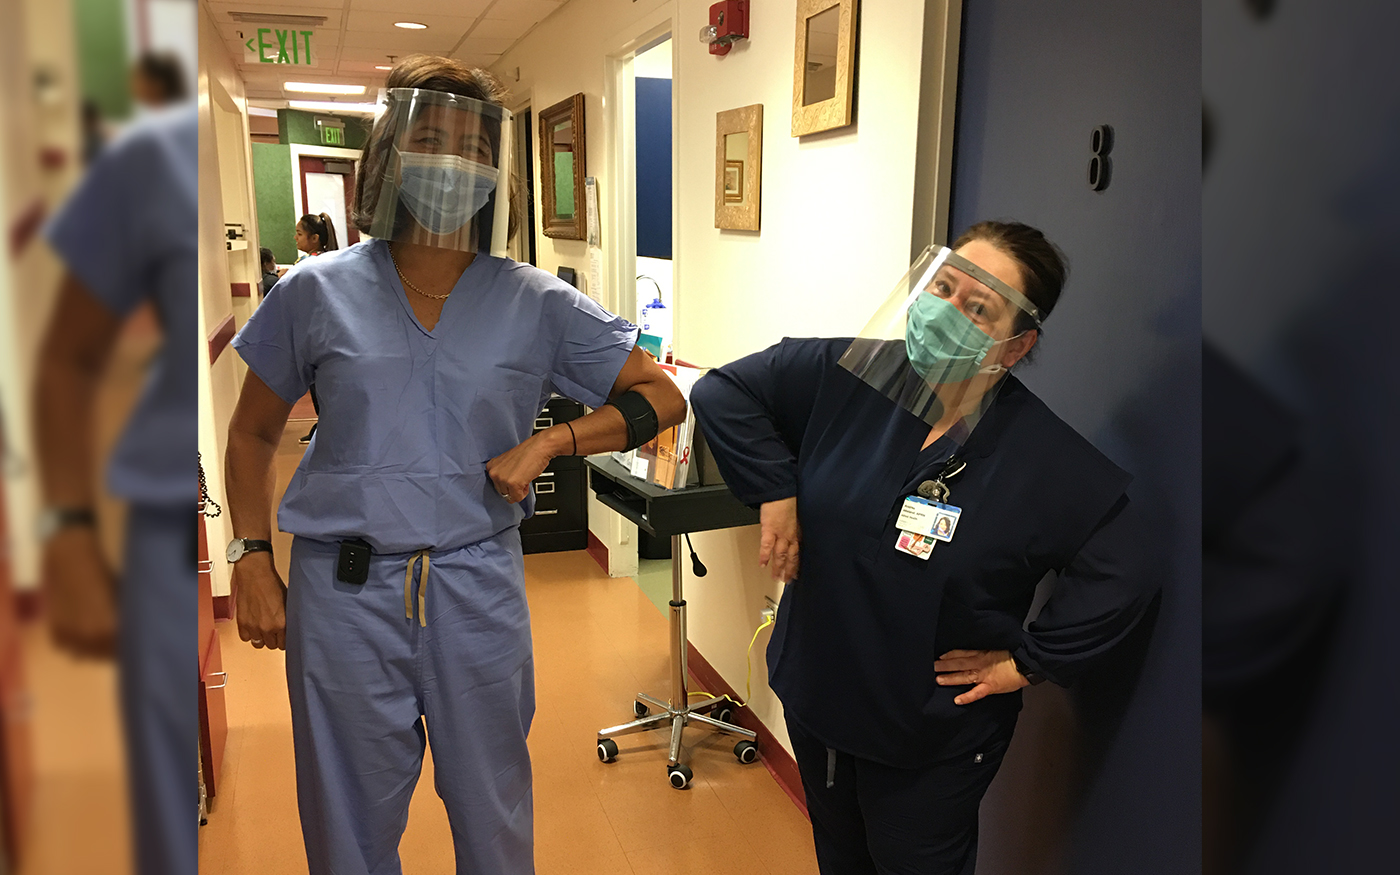 The doctors/nurses from the delivery department at Kapiolani Medical Center for Women & Children wearing the face shields.